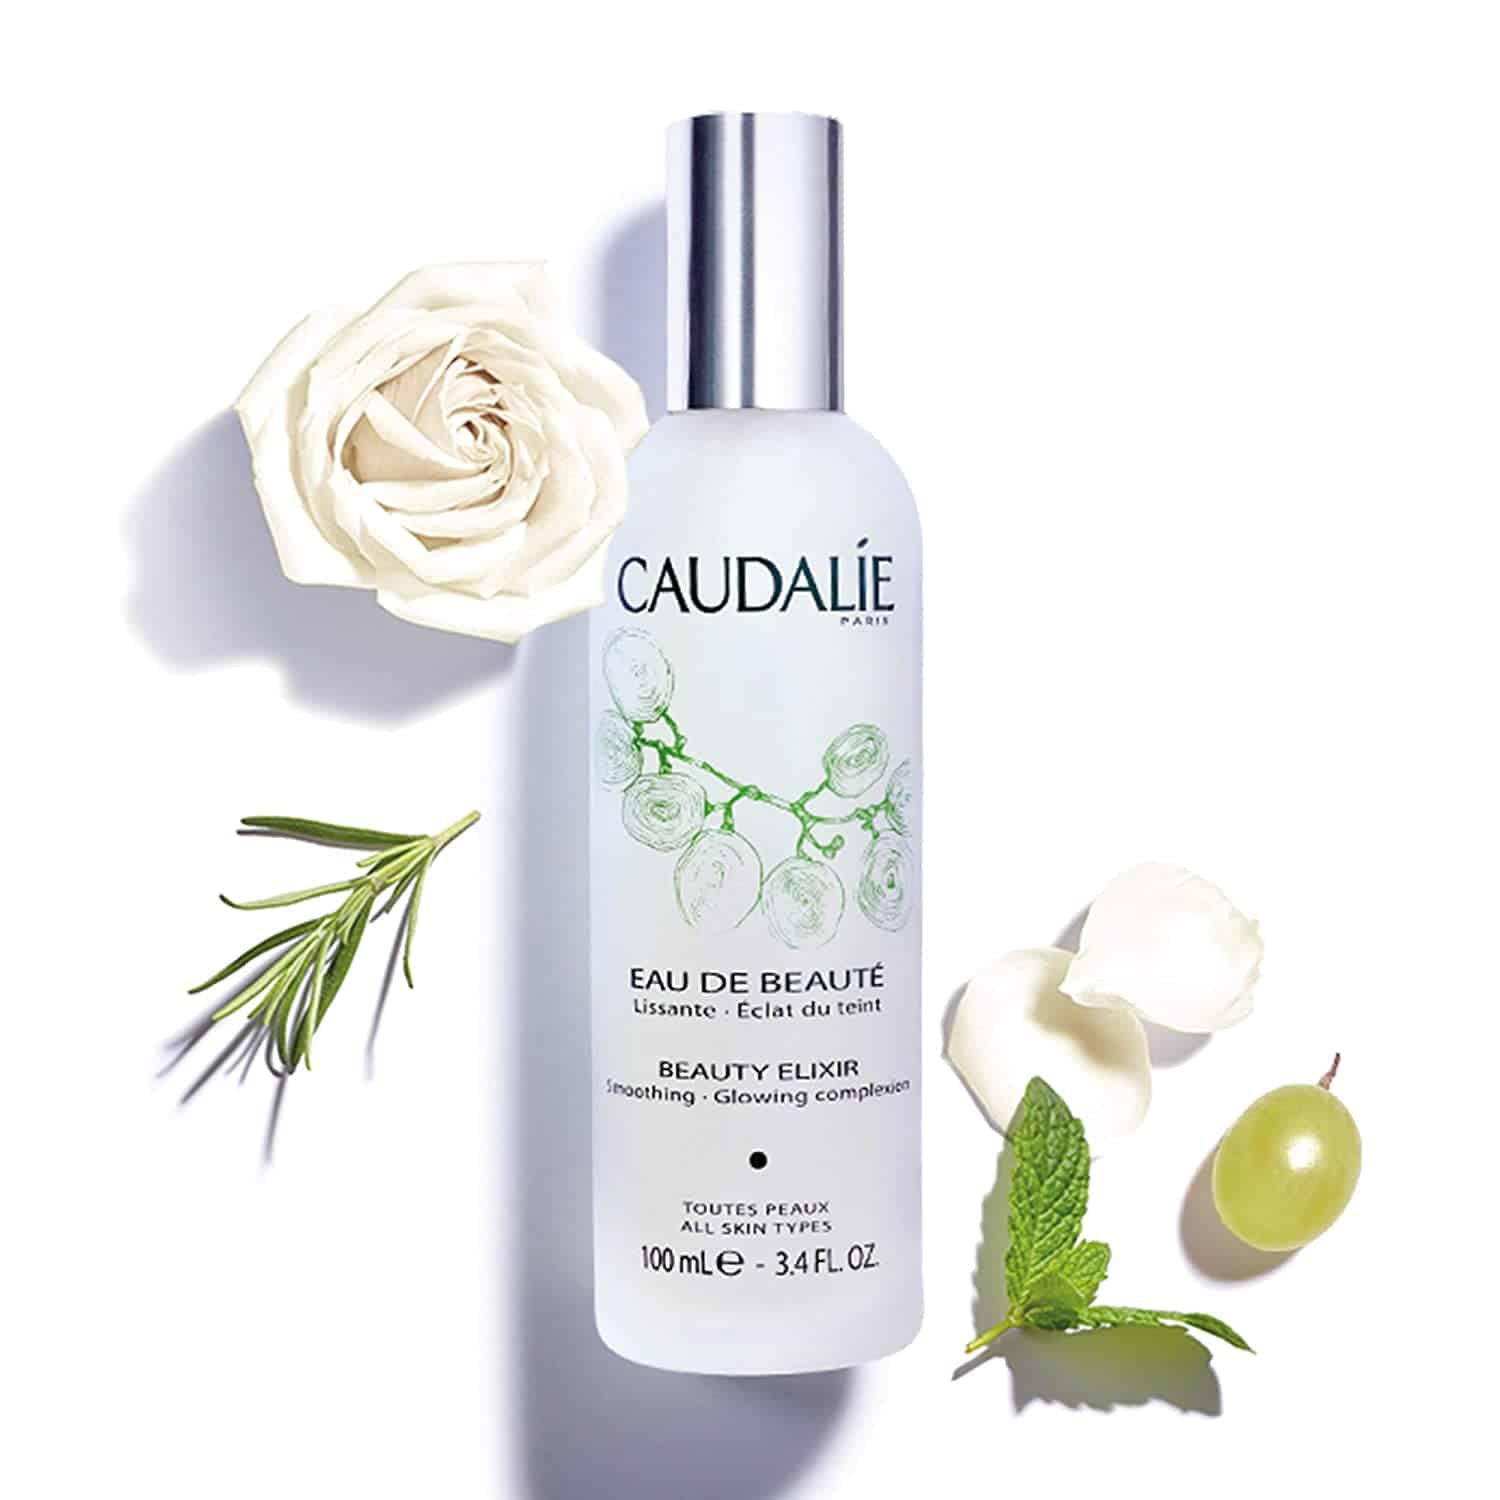 Caudalie Beauty Elixir Face Mist